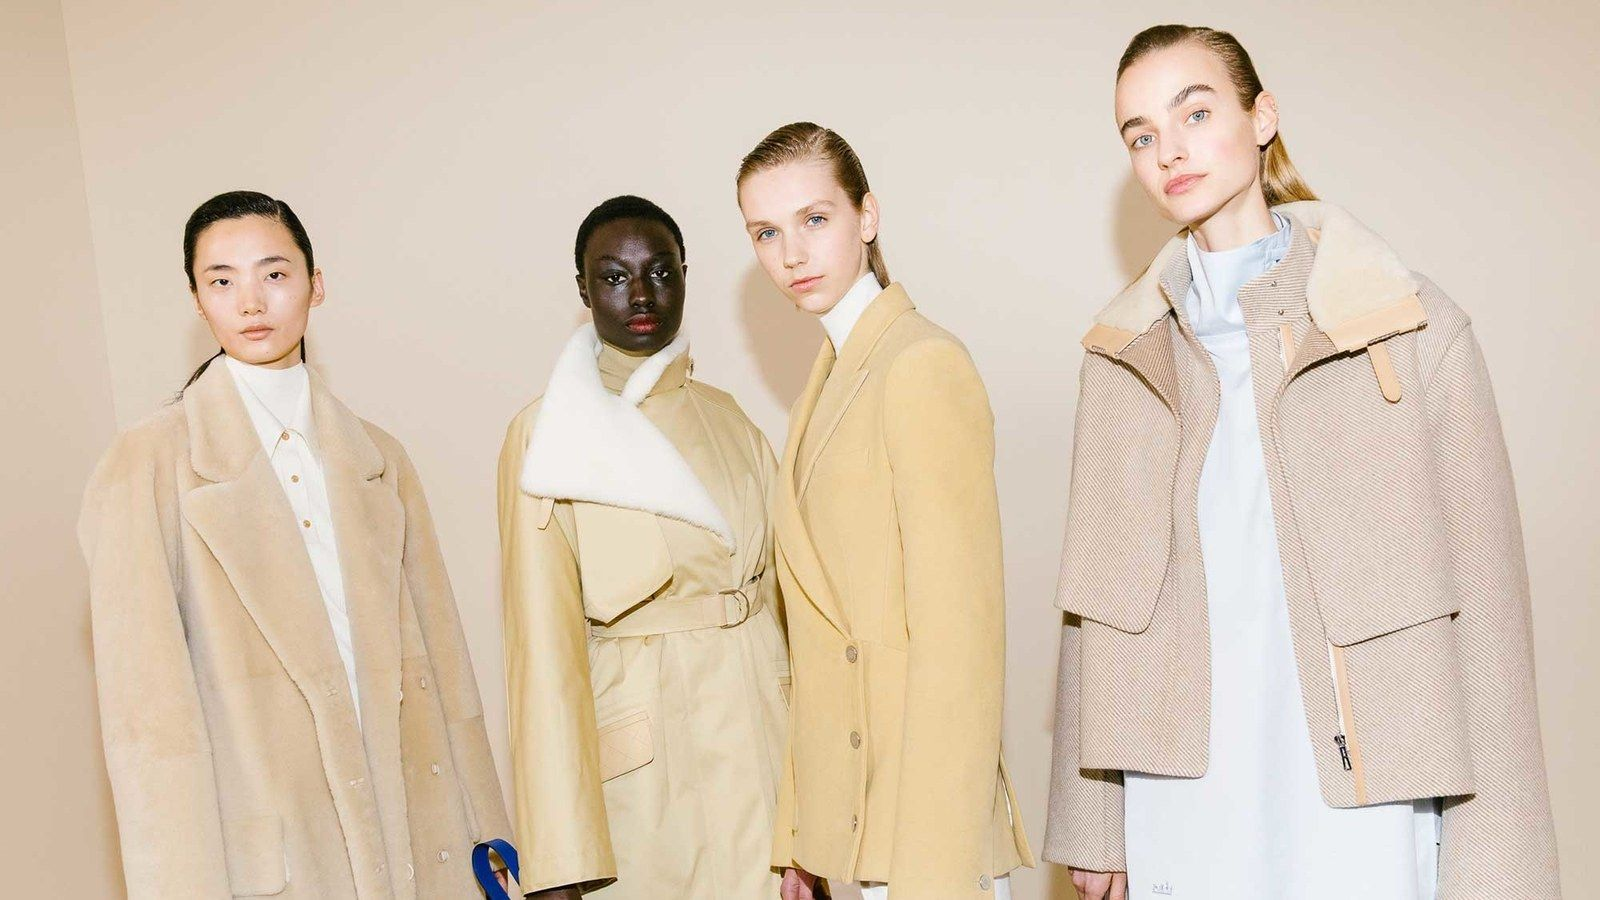 CoreyTenold'sBest Backstage Photos From ParisFashion Week Fall 2020 -  From Marine Serre to Dior and Chanel at the end of the week, Corey Tenold is capturing all of the b - #Backstage #CoreyTenoldsBest #Fall #ParisFashion #Photos #RunwayFashion2020 #RunwayFashionaesthetic #RunwayFashionalexandermcqueen #RunwayFashioncasual #RunwayFashionchanel #RunwayFashiondior #RunwayFashiondolce&gabbana #RunwayFashionversace #RunwayFashionwomen #Week